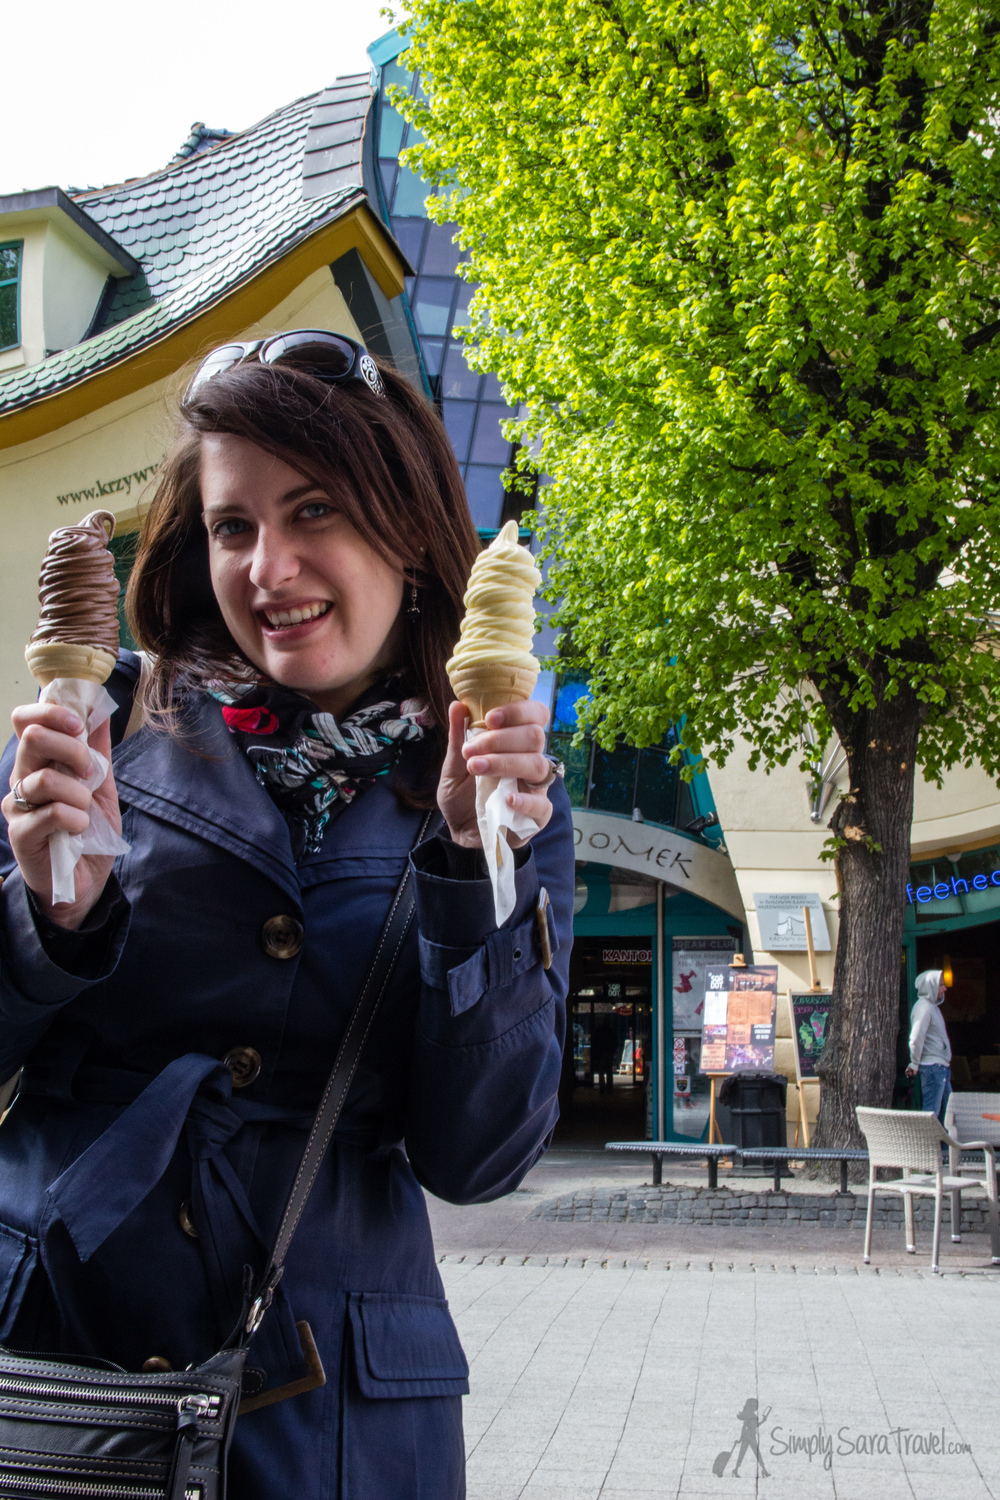 It may be chilly, but it's always time for some ice cream in Poland.